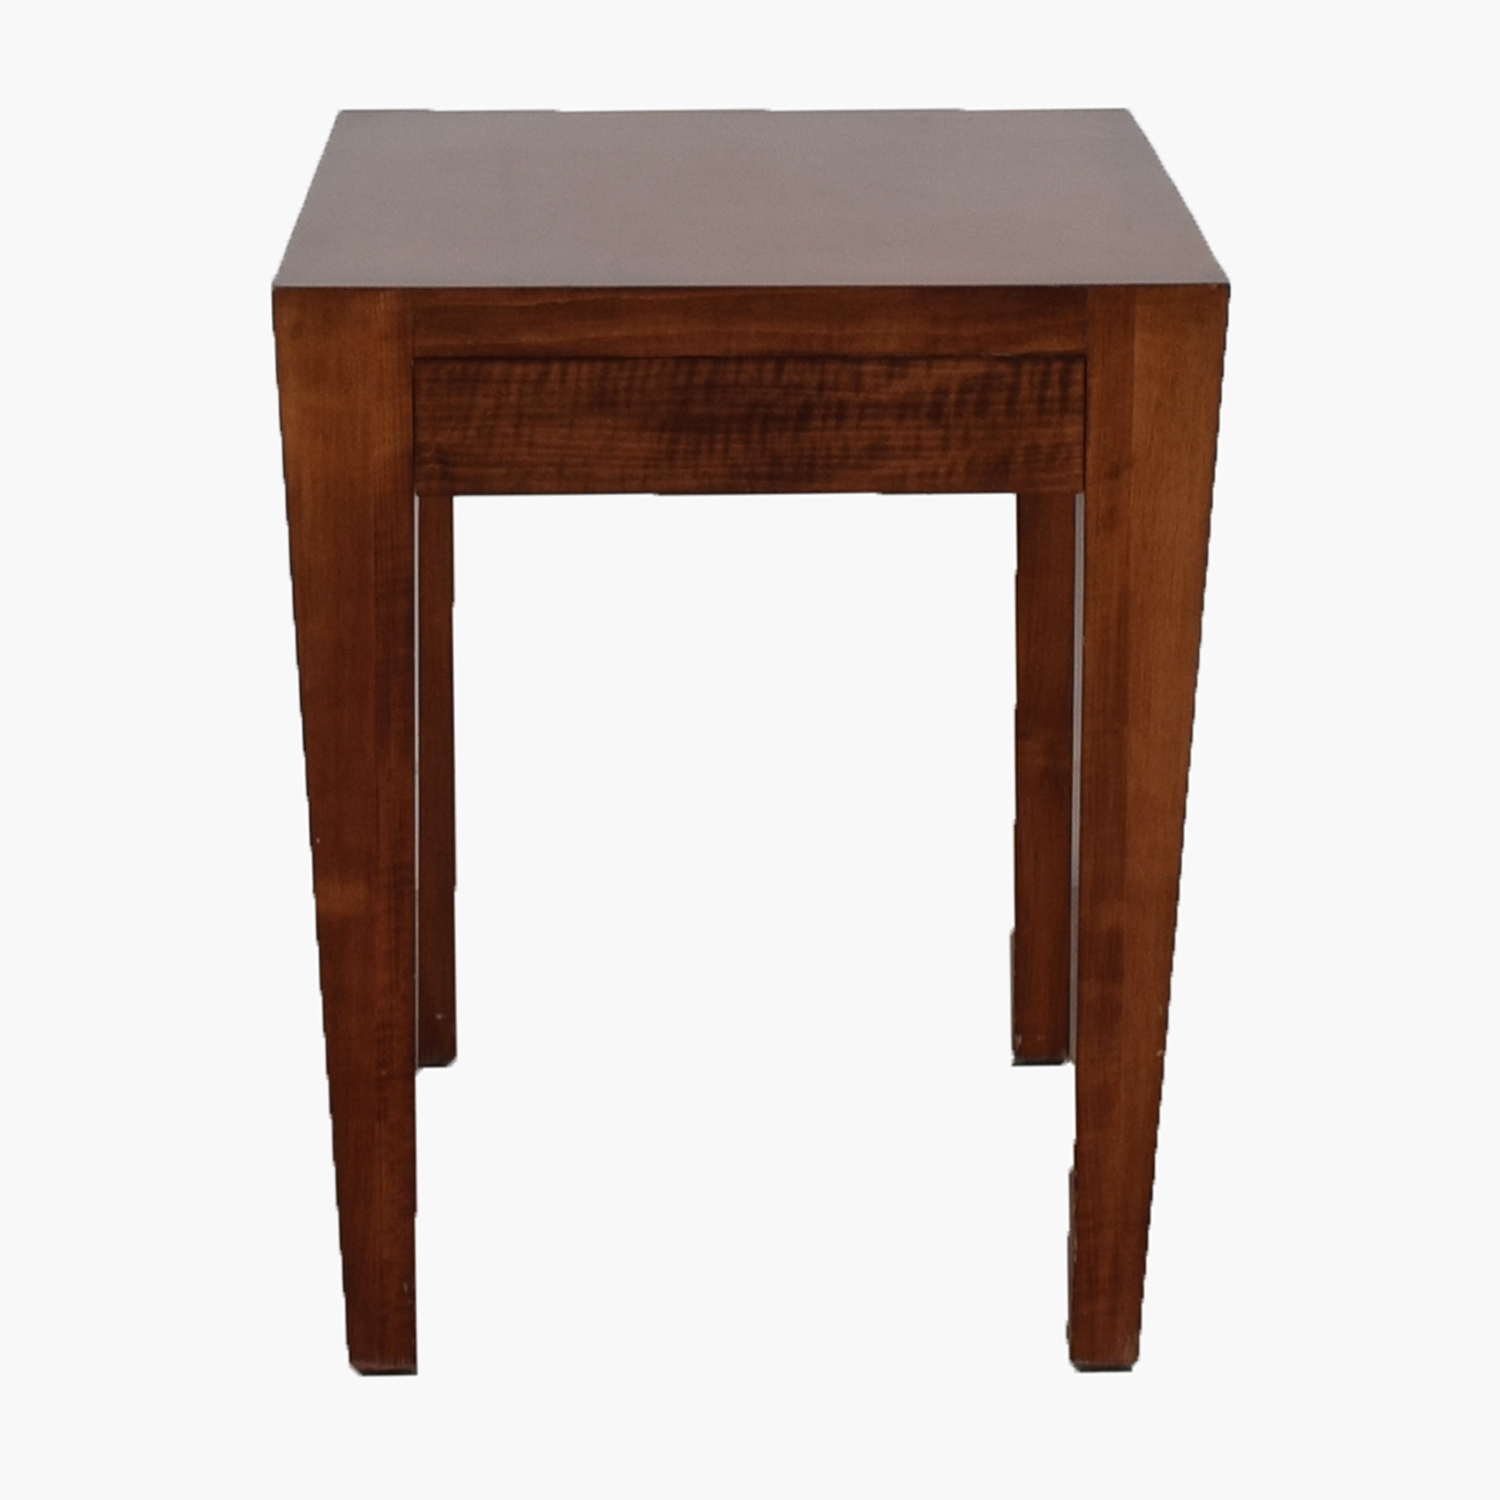 Furniture Masters Furniture Masters Single Drawer End Table coupon